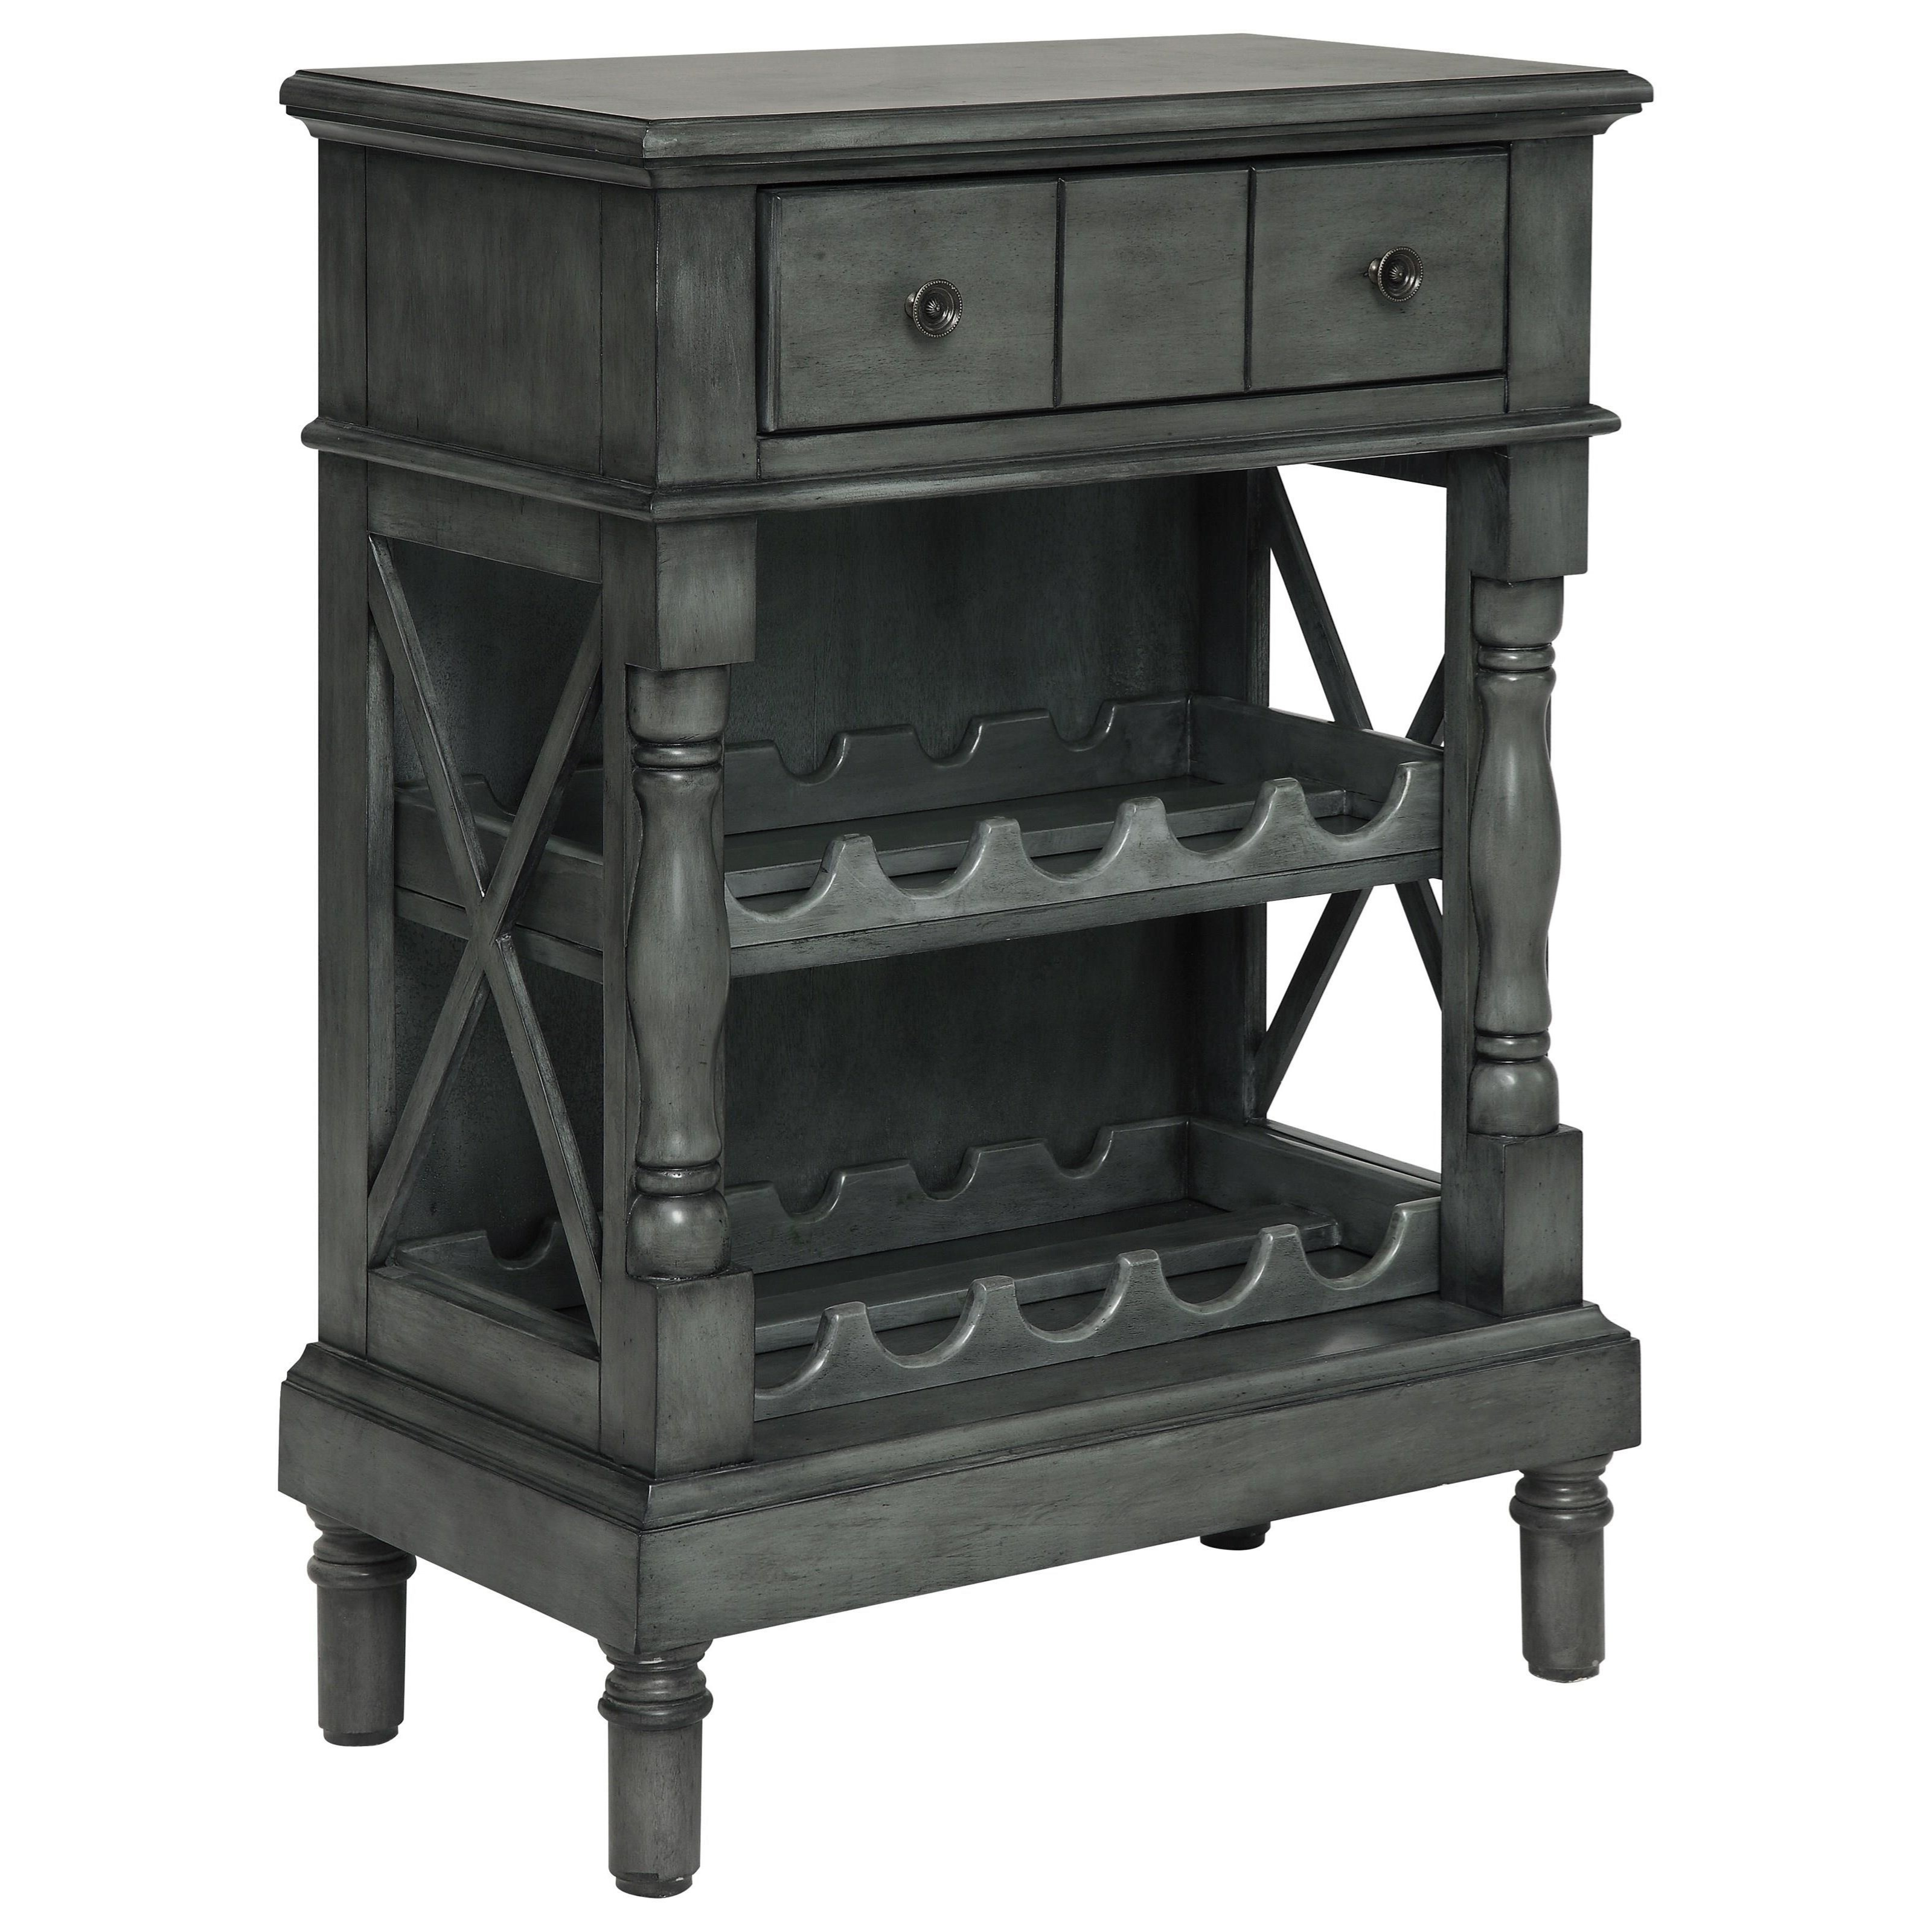 Coast to Coast Accents One Drawer Wine Server/Bookcase by Coast to Coast Imports at Pilgrim Furniture City